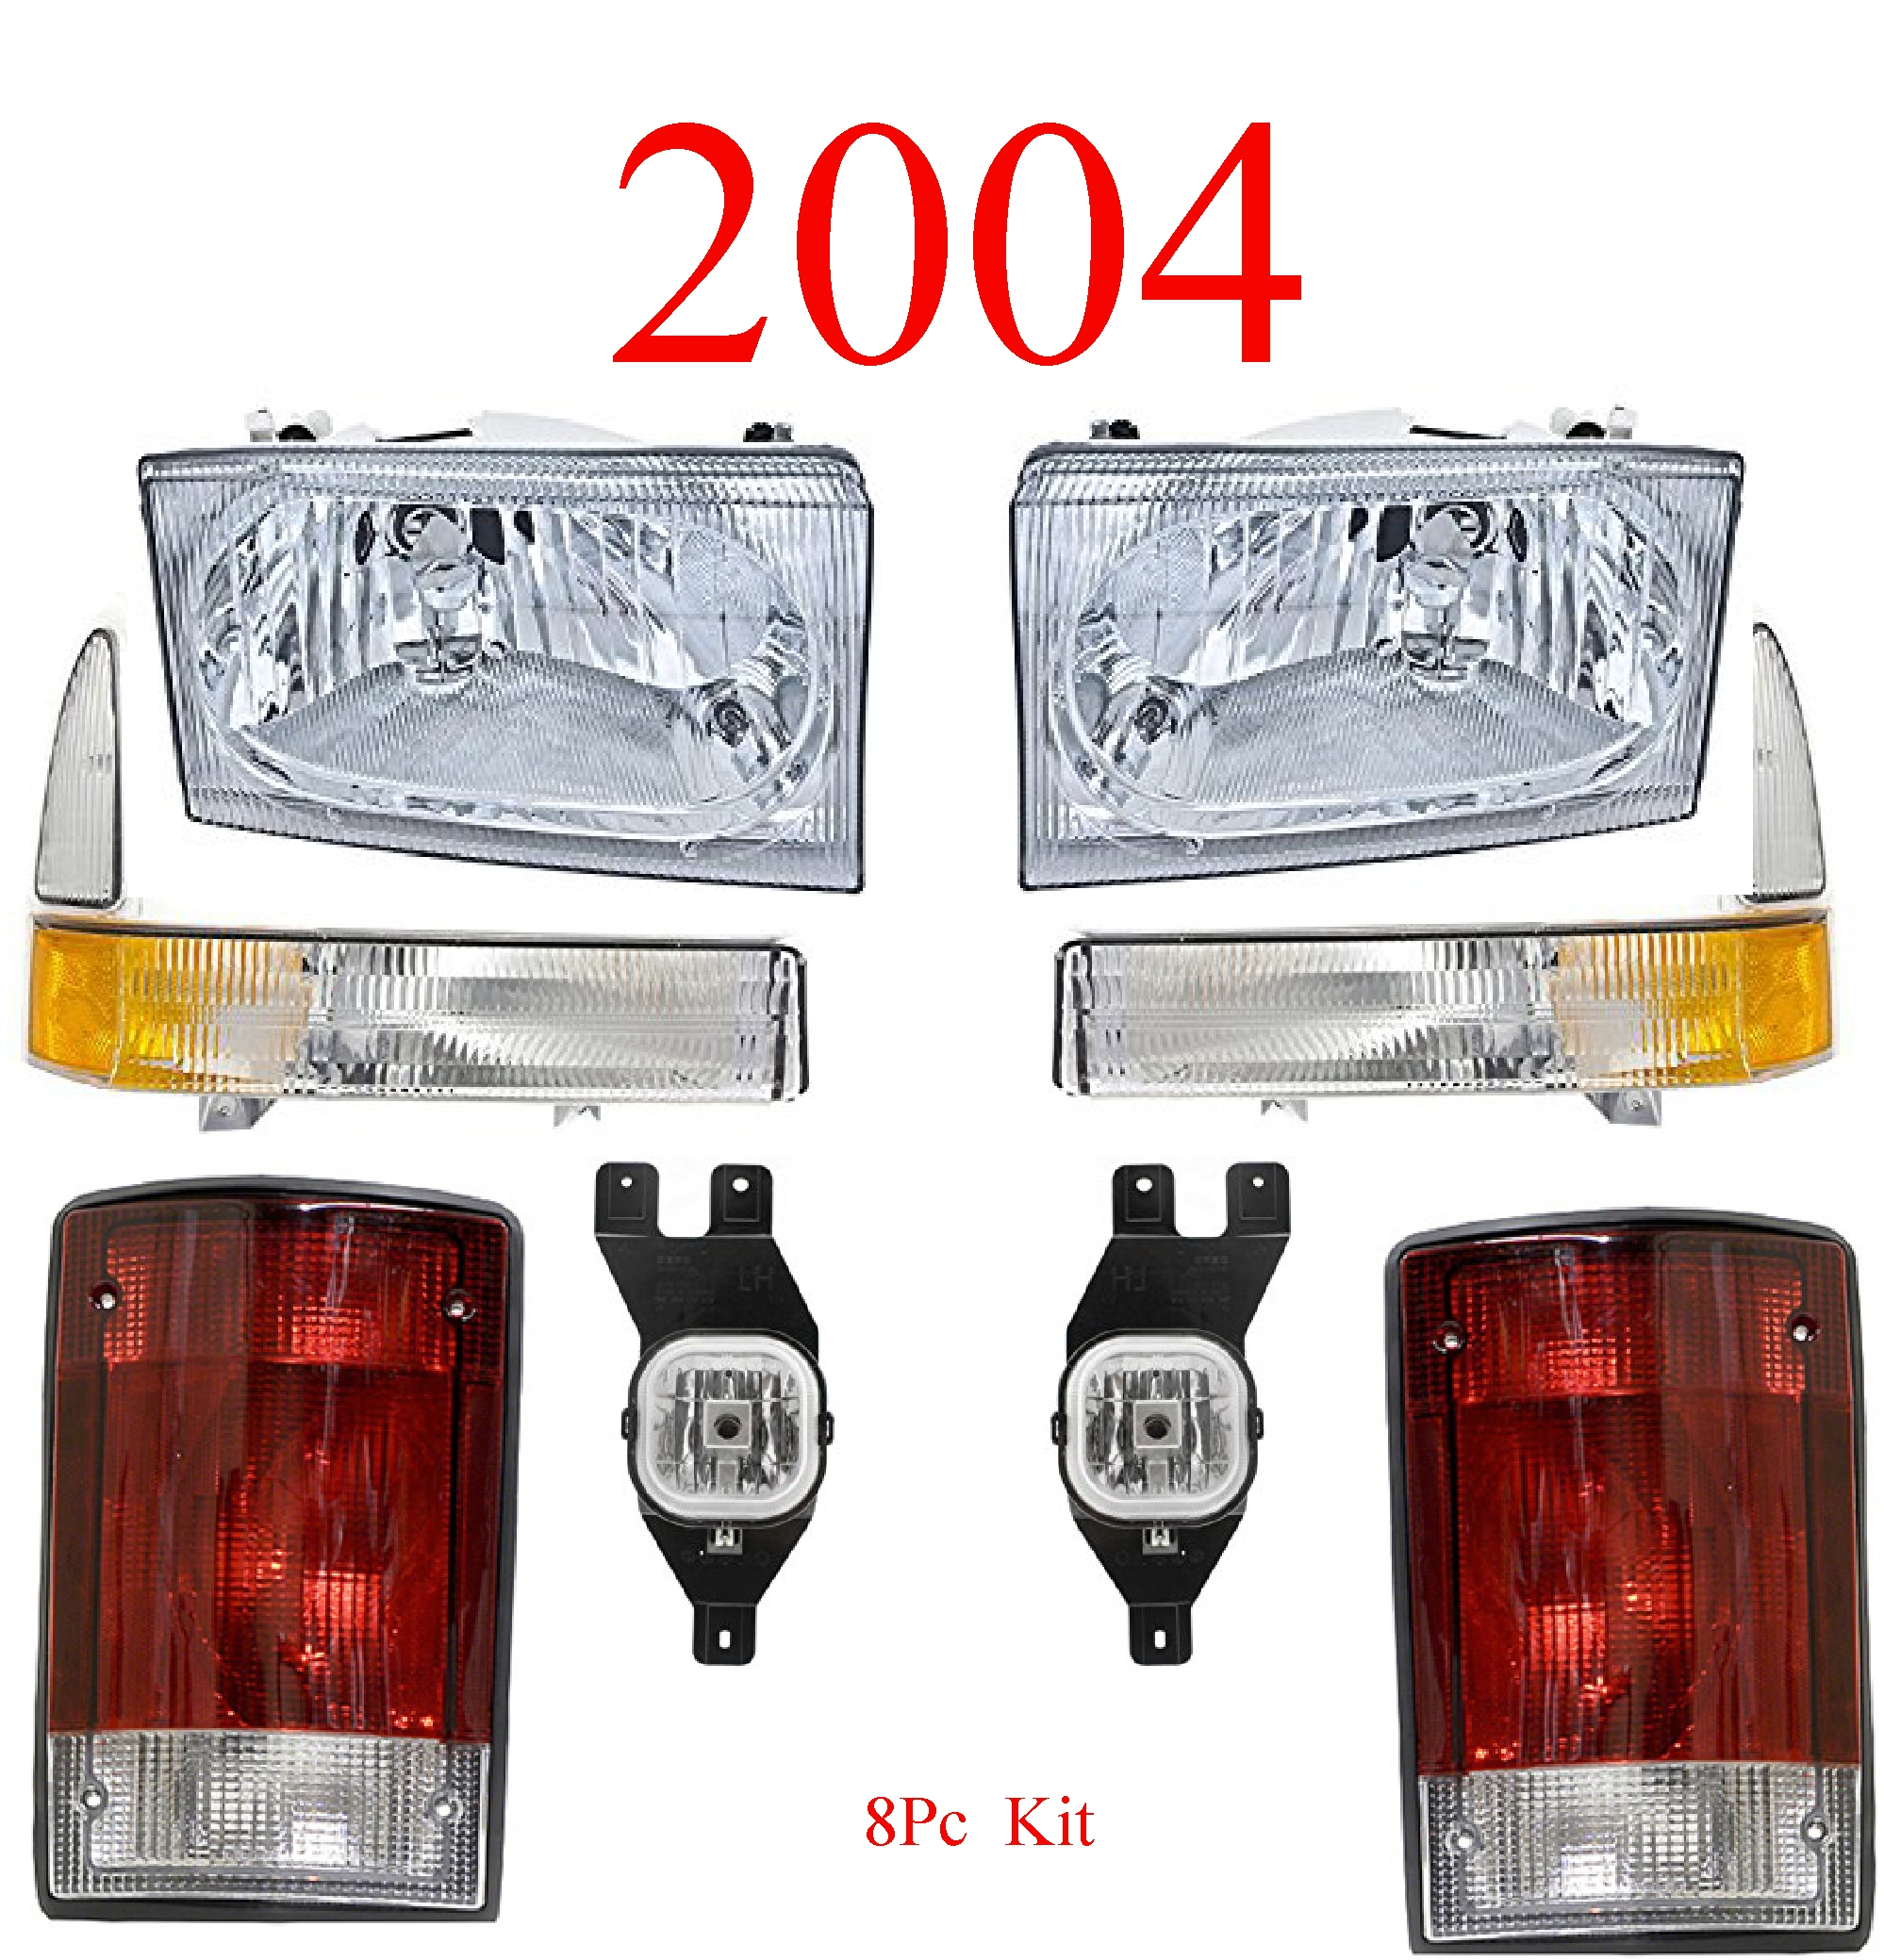 04 Ford Excursion 8Pc Head, Park, Fog & Tail Light Kit